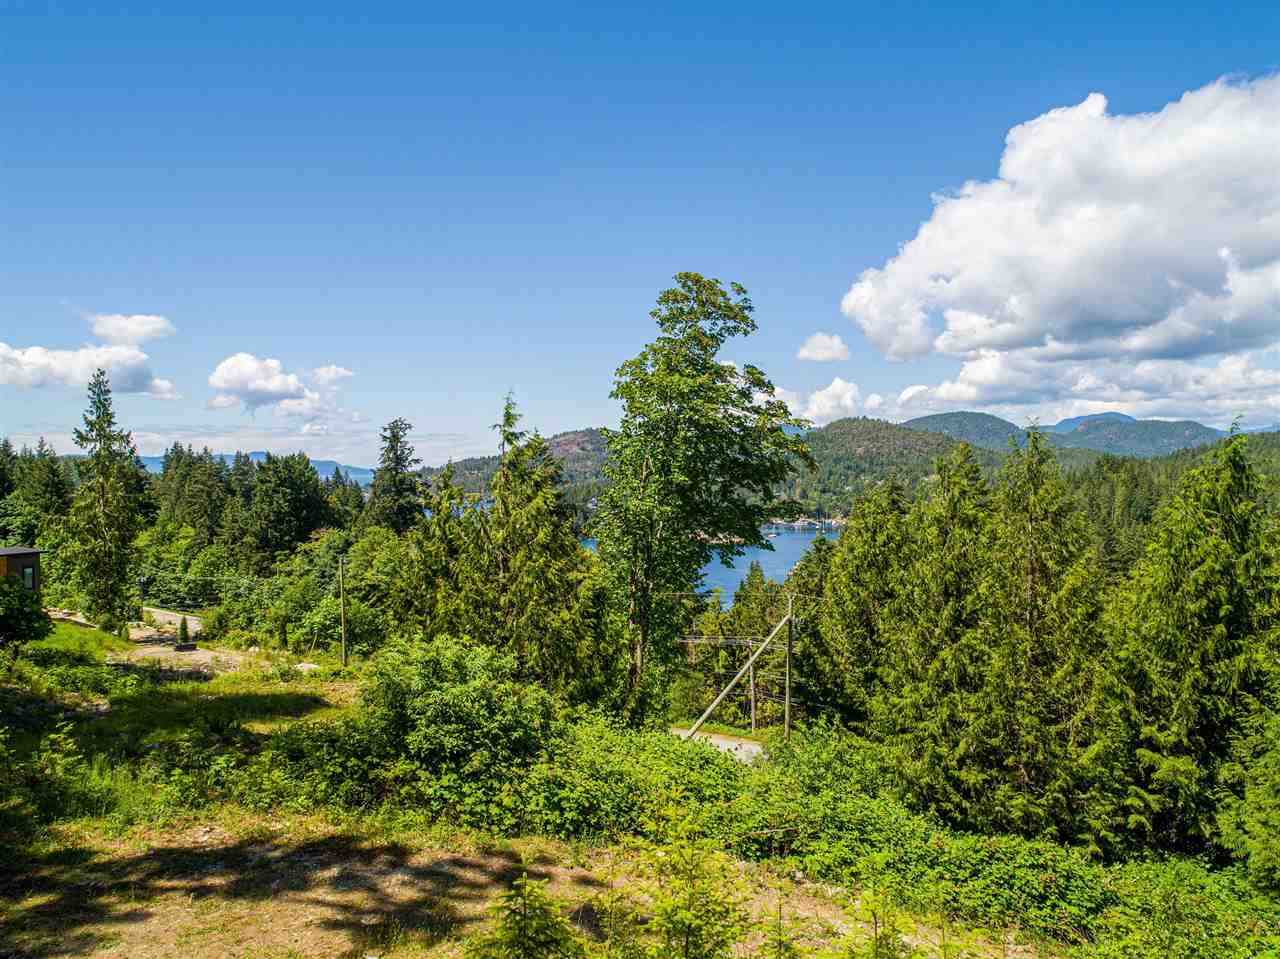 LOT 15 CECIL HILL ROAD - Pender Harbour Egmont  for sale(R2351391)